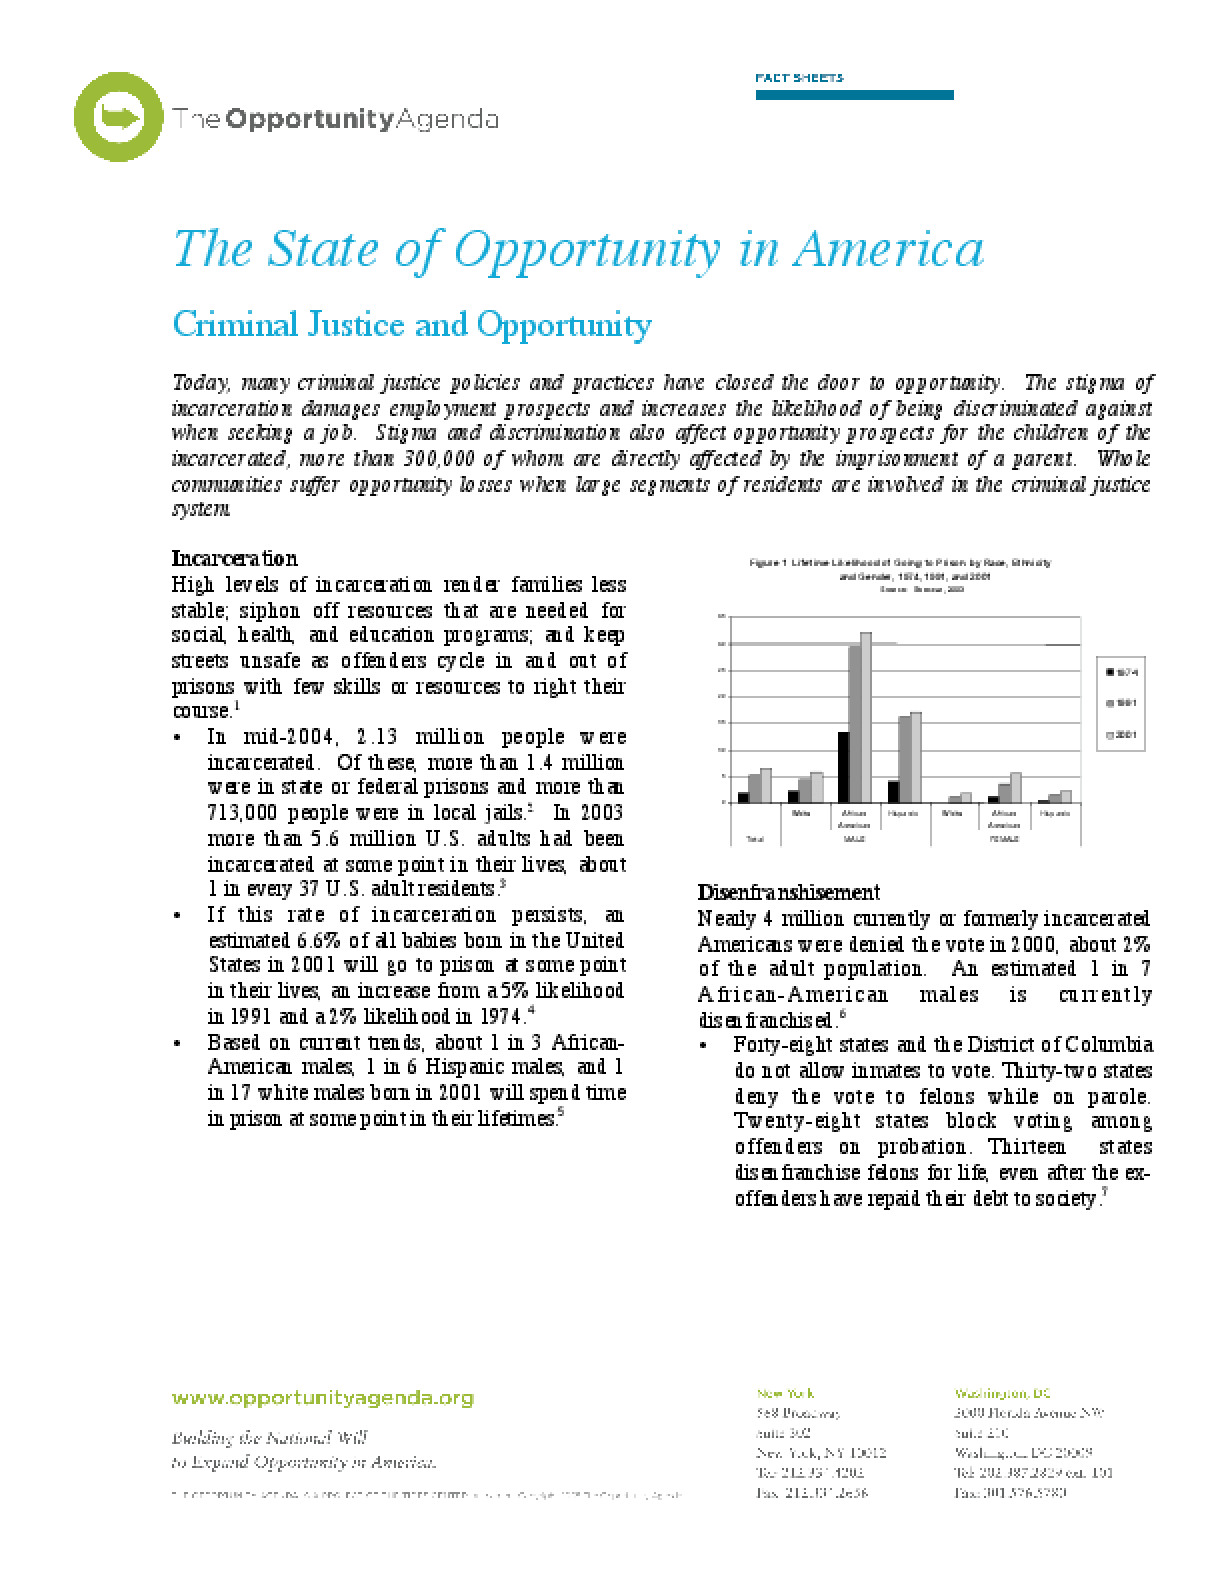 Criminal Justice and Opportunity